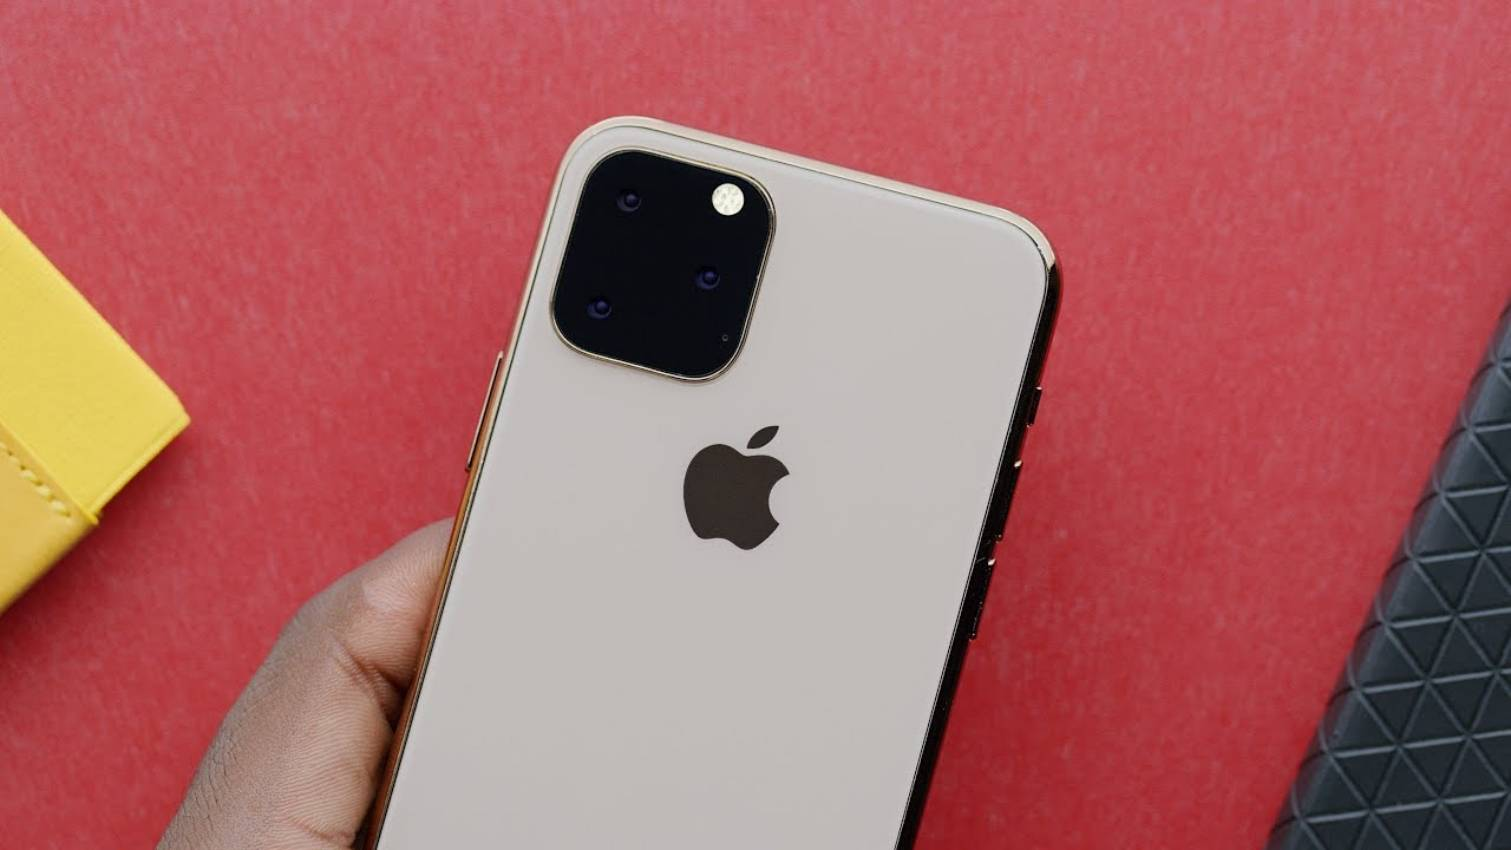 iphone 11 DOMINA Telefoane Qualcomm Snapdragon 855 Plus